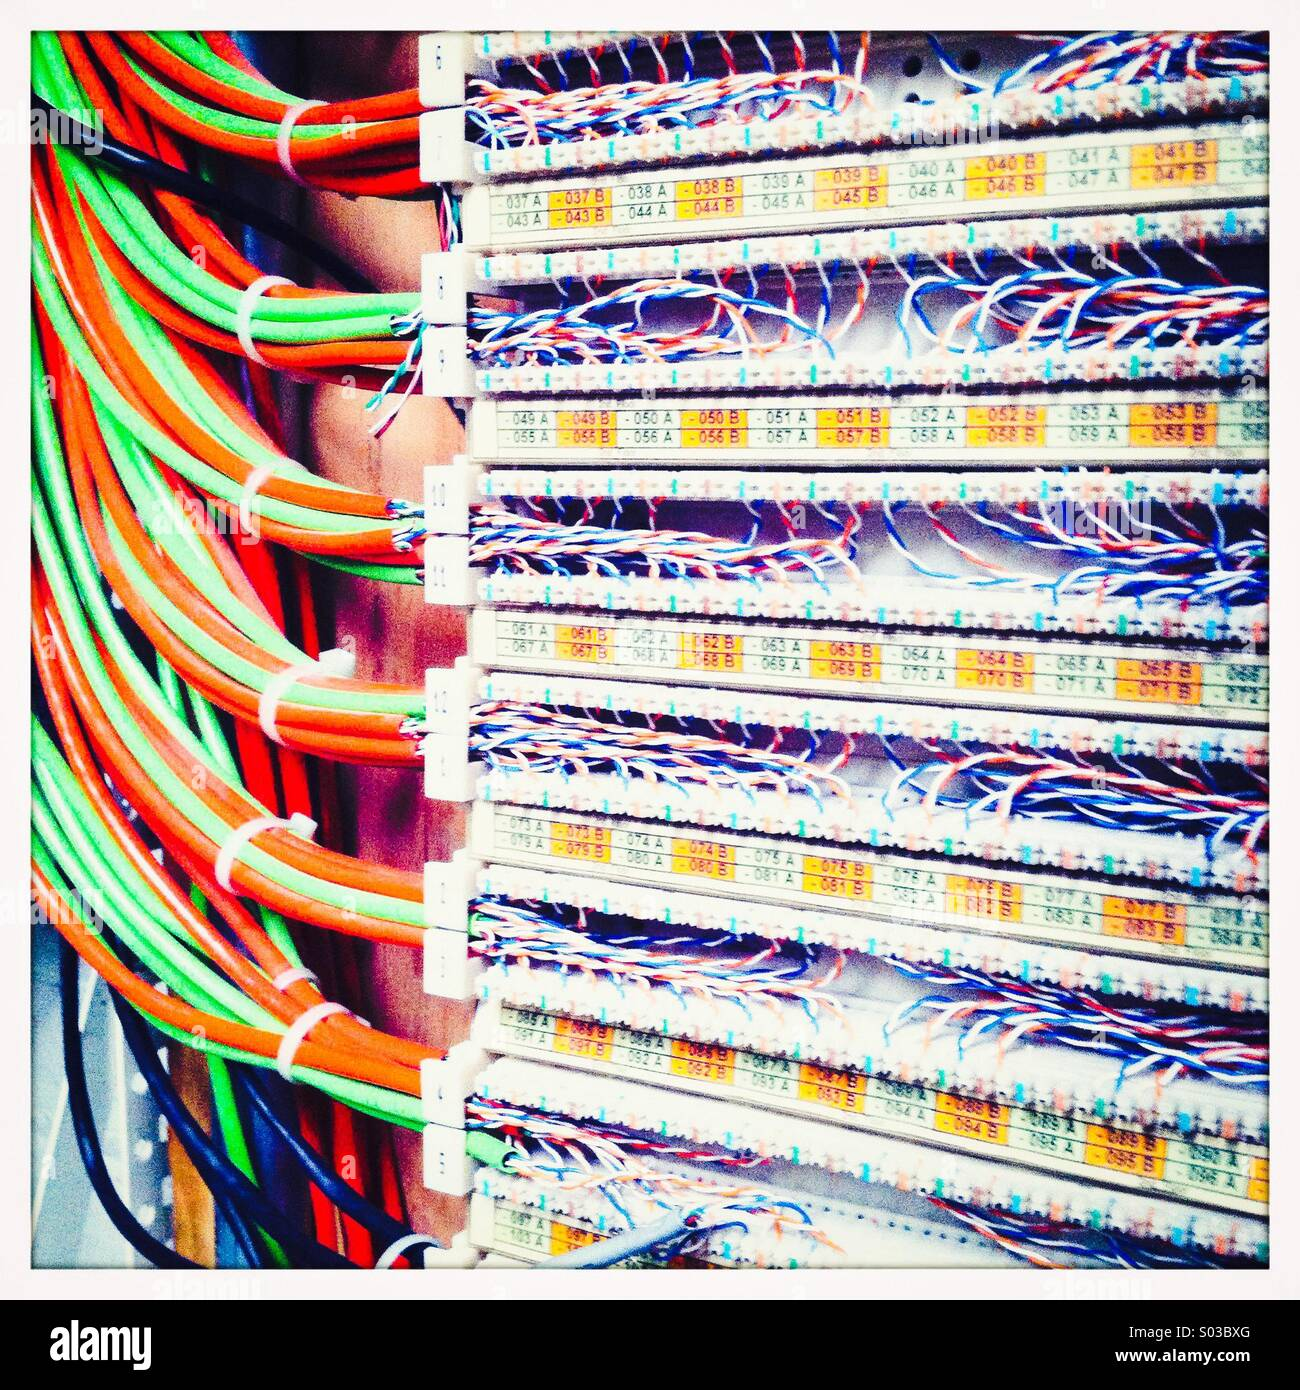 Telecommunications switch board - Stock Image